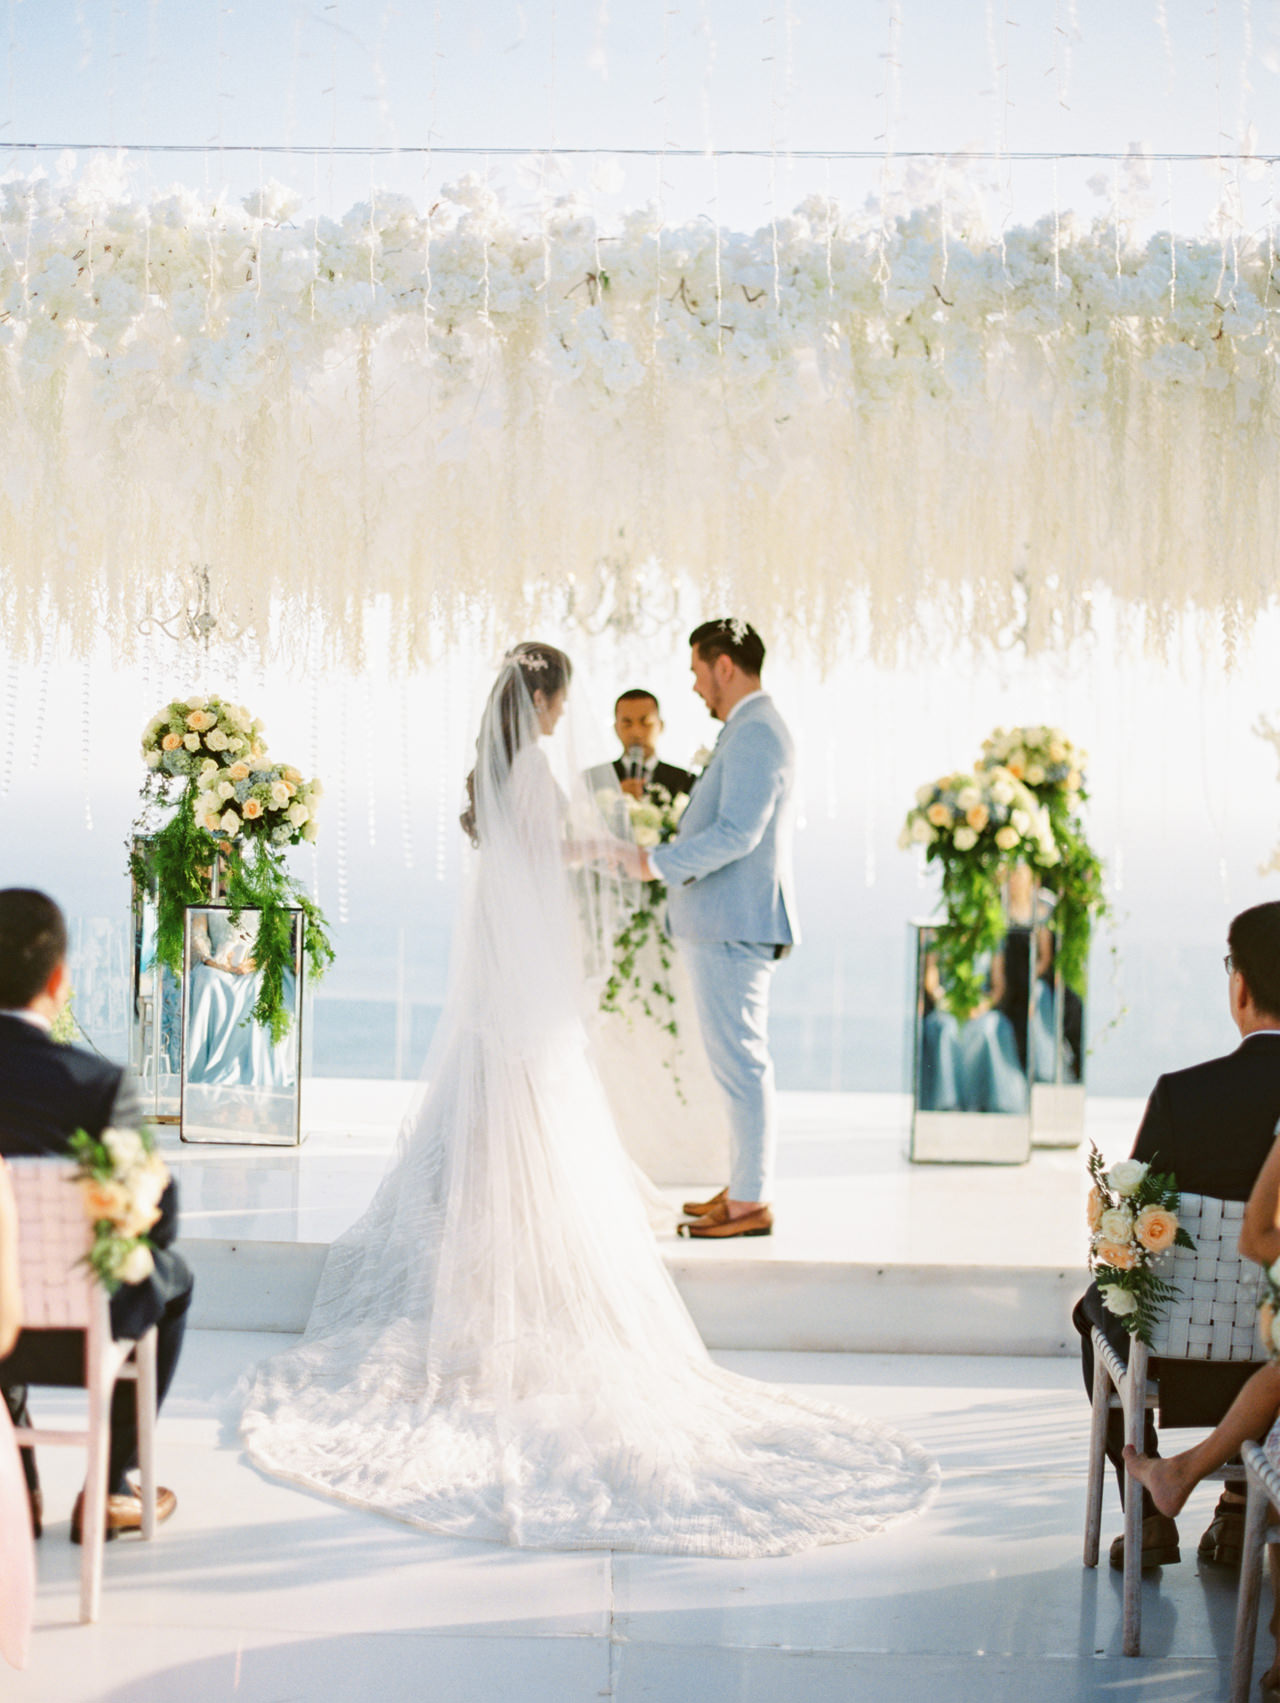 M&S: Shades of Blue Villa Plenilunio Bali Wedding 60